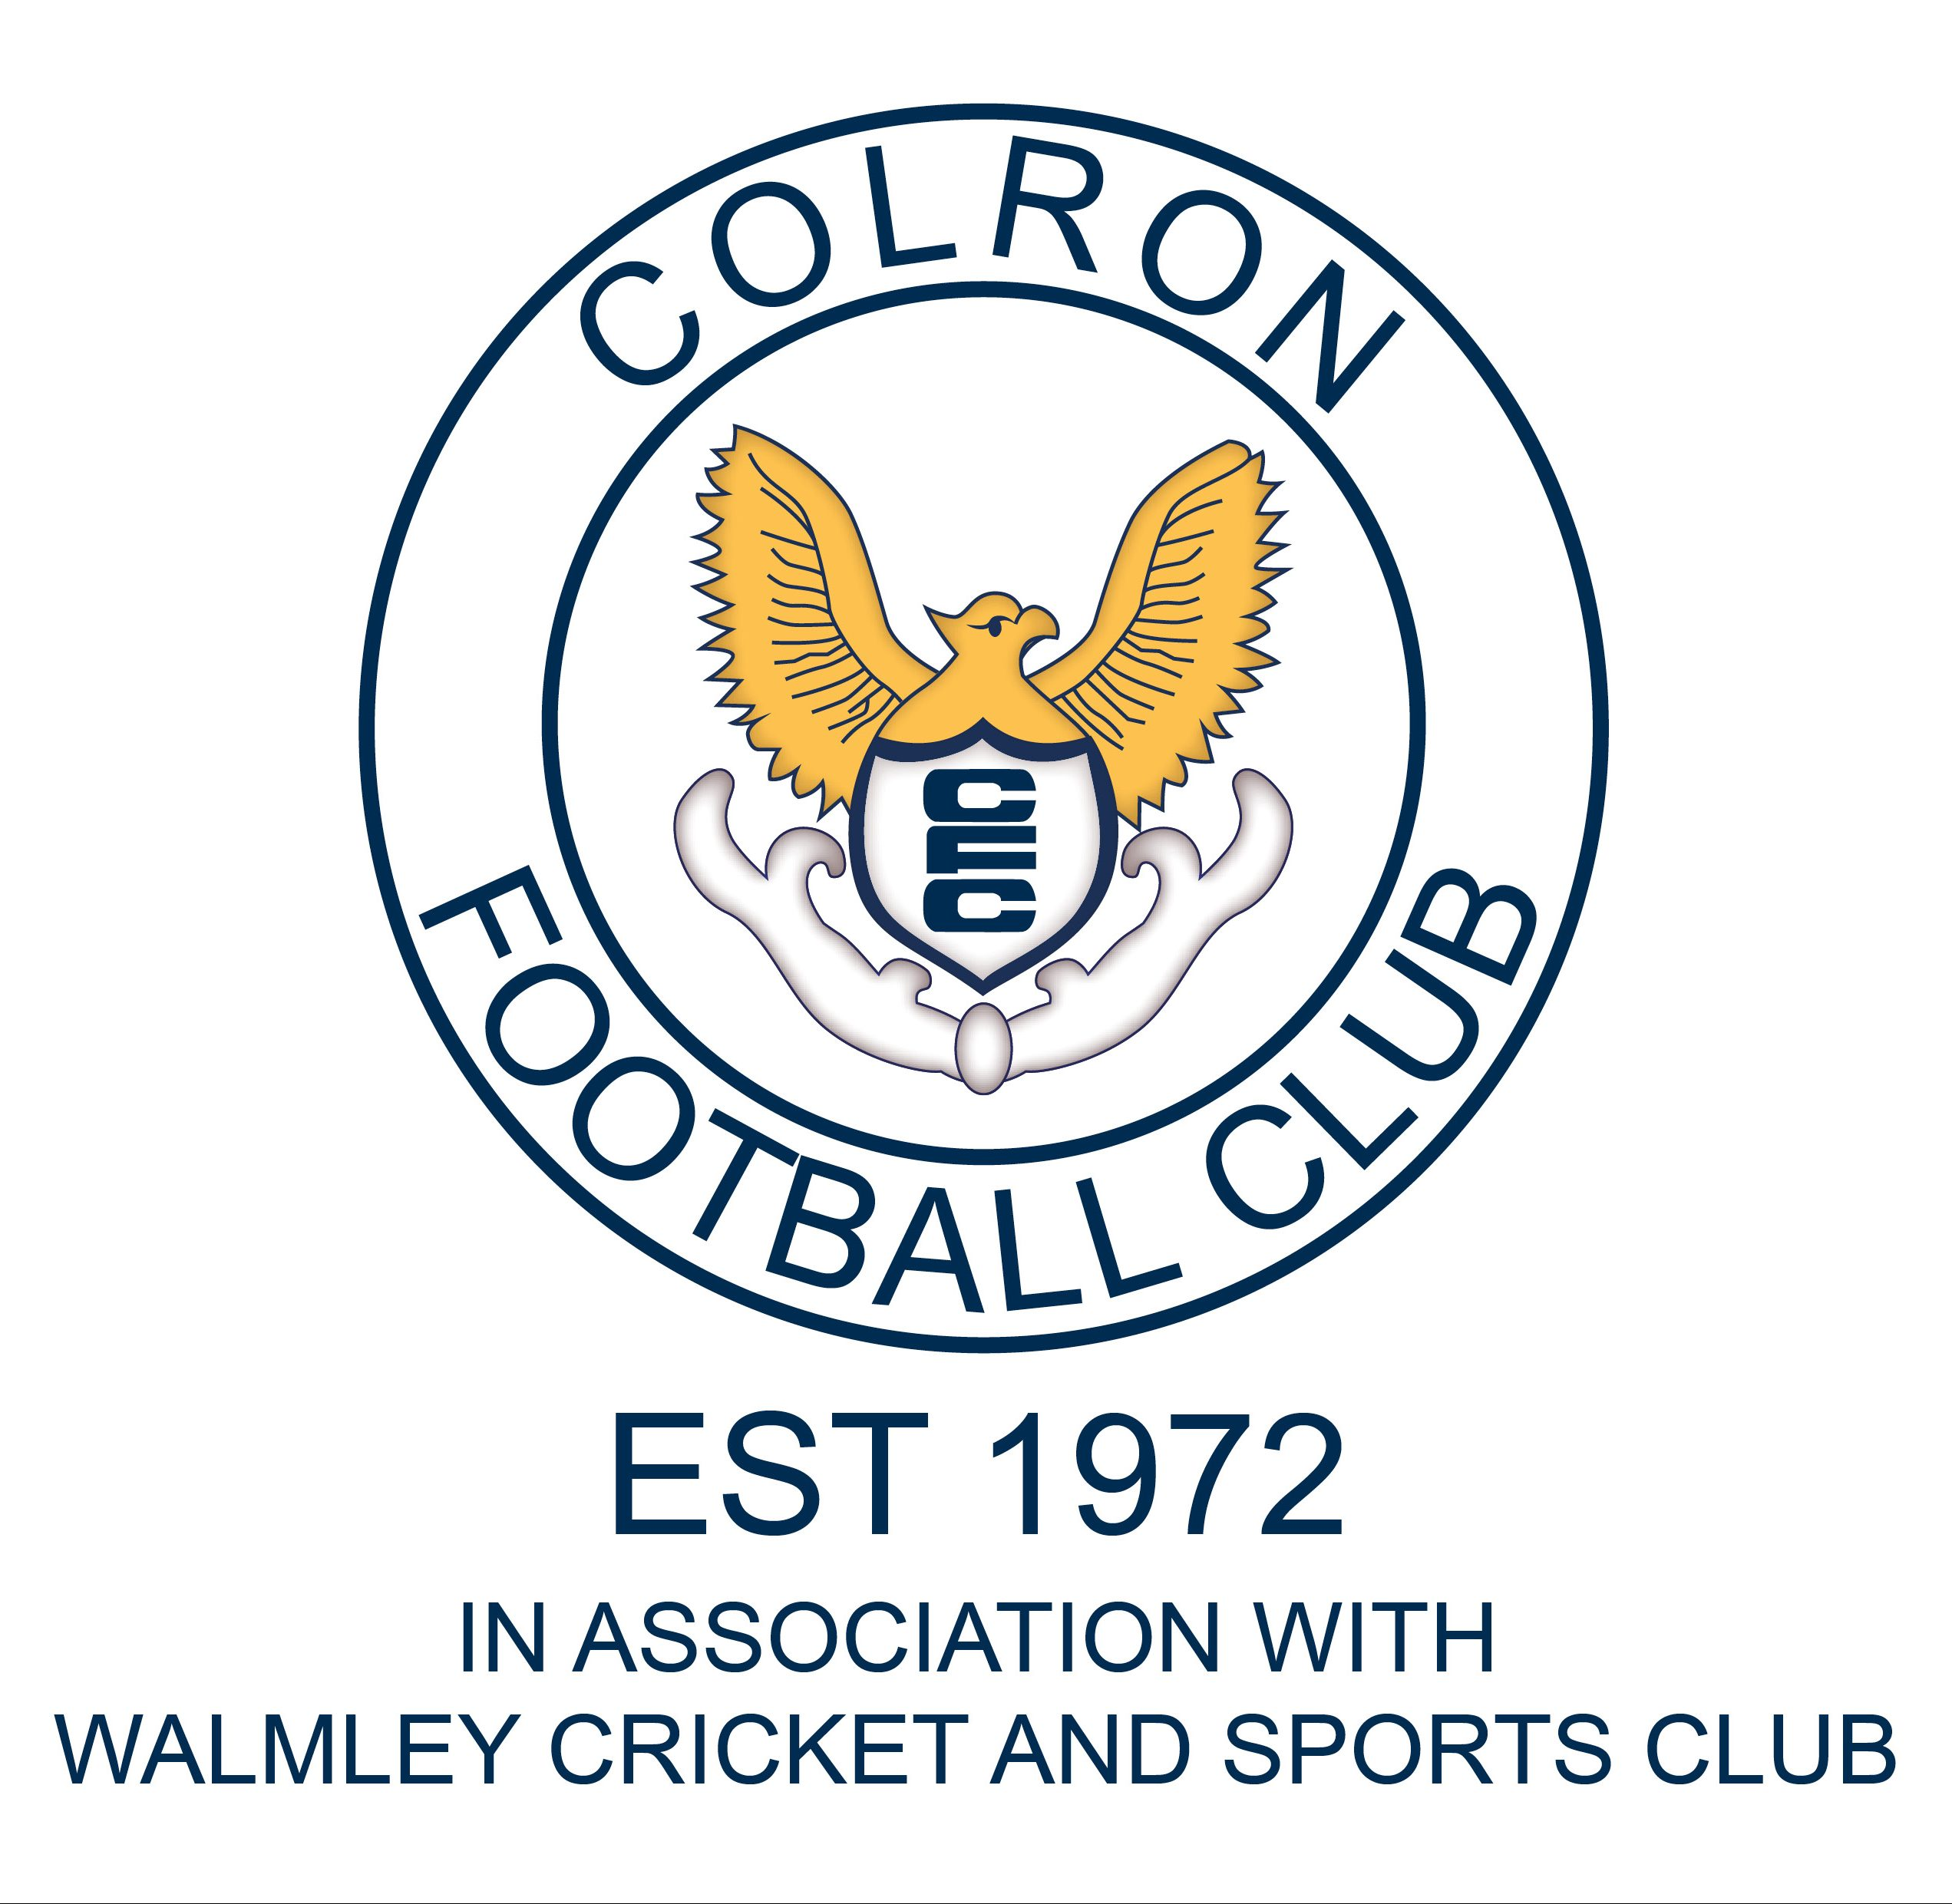 Walmley Colron Football Club Statement